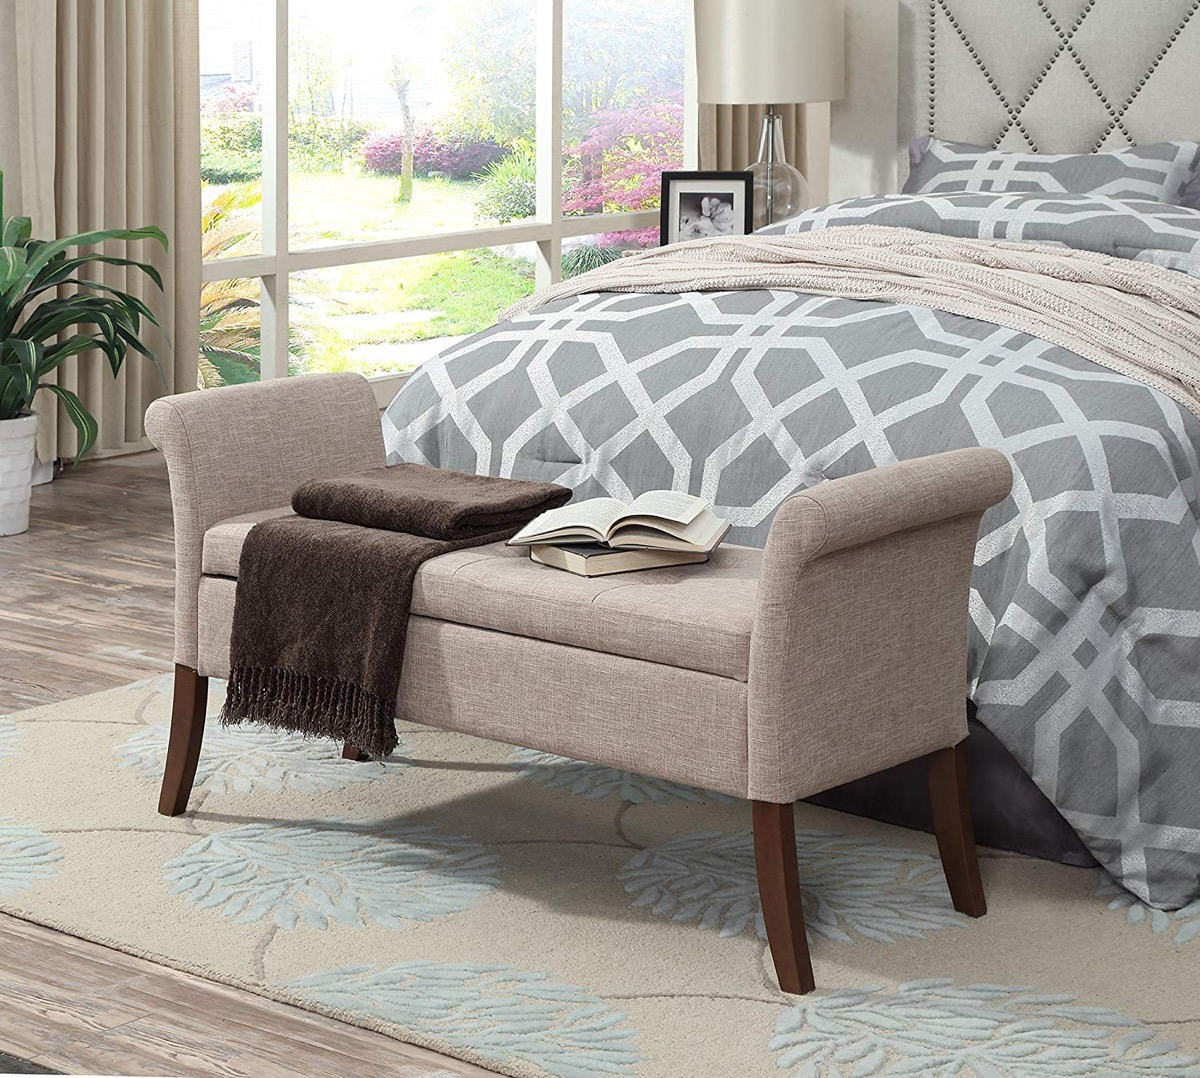 stylish-end-of-bed-storage-bench-with-rolled-armrests-and-beige-upholstery